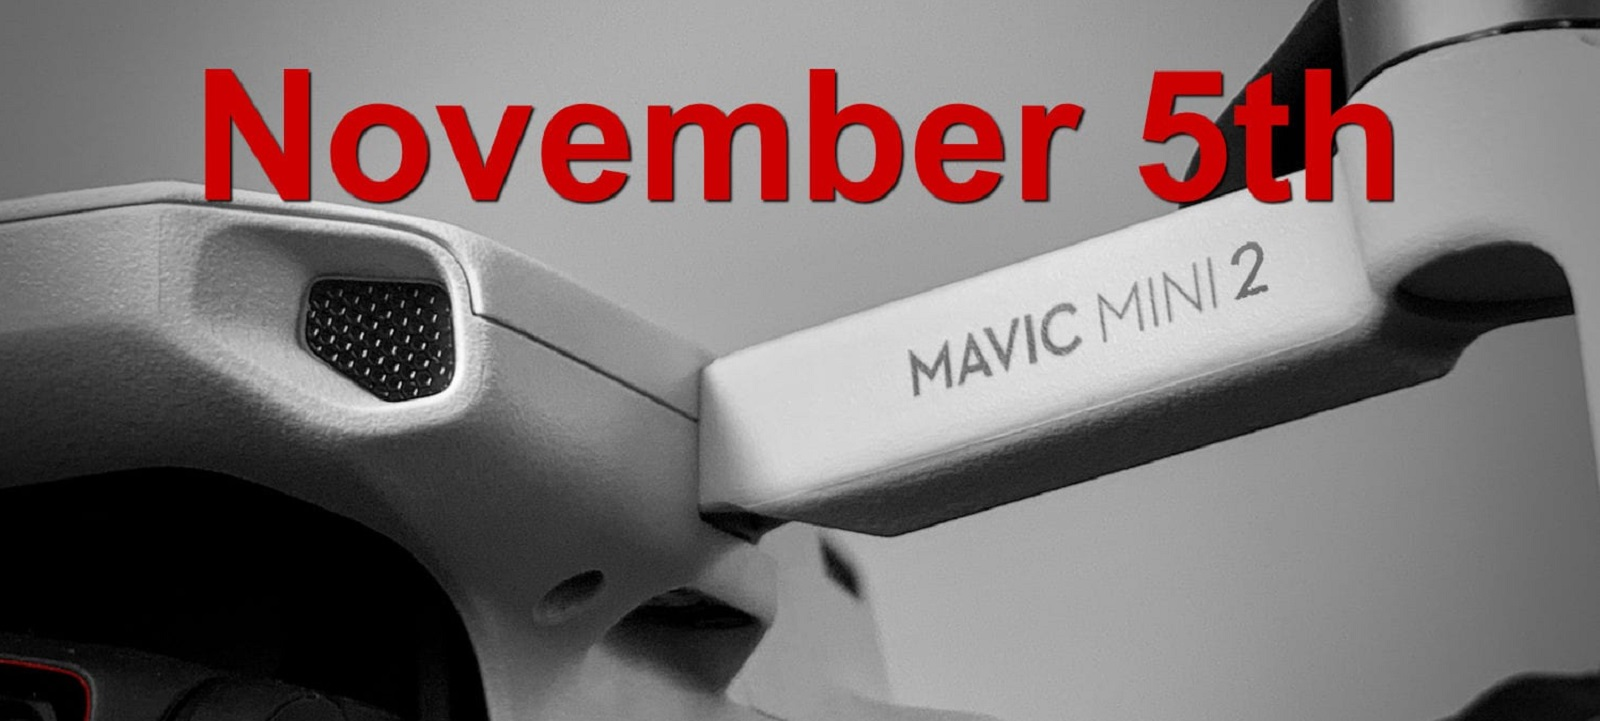 Дата выхода Mavic Mini 2 – 5 ноября!